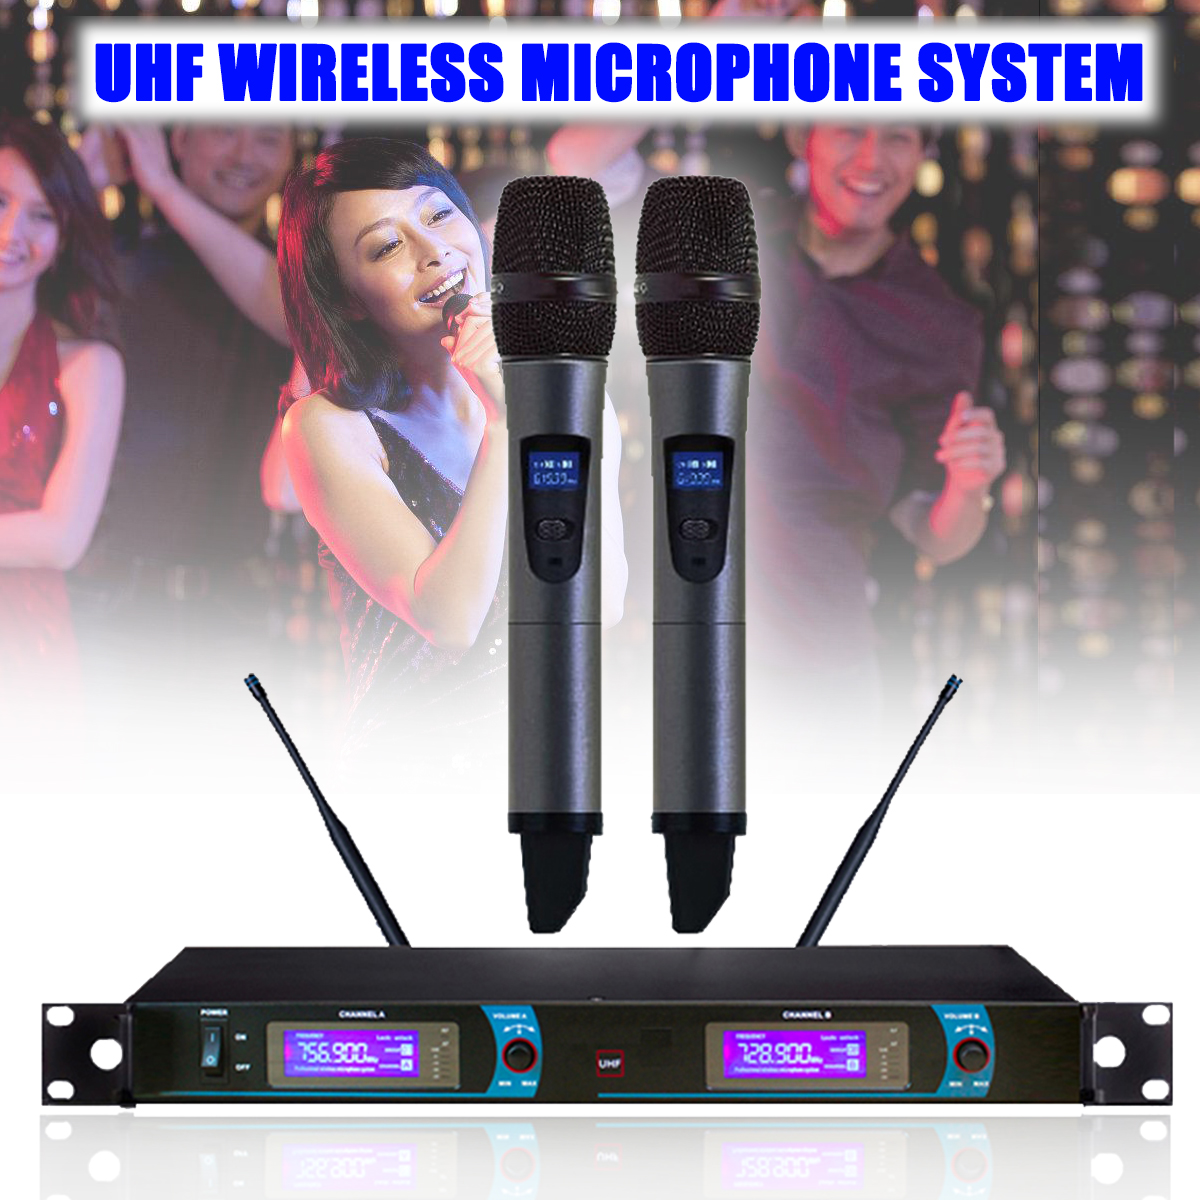 цена на Karaoke DJ Wireless Microphone Profesional LCD Display UHF Wireless Dual Handheld Microphone Mic System Home KTV